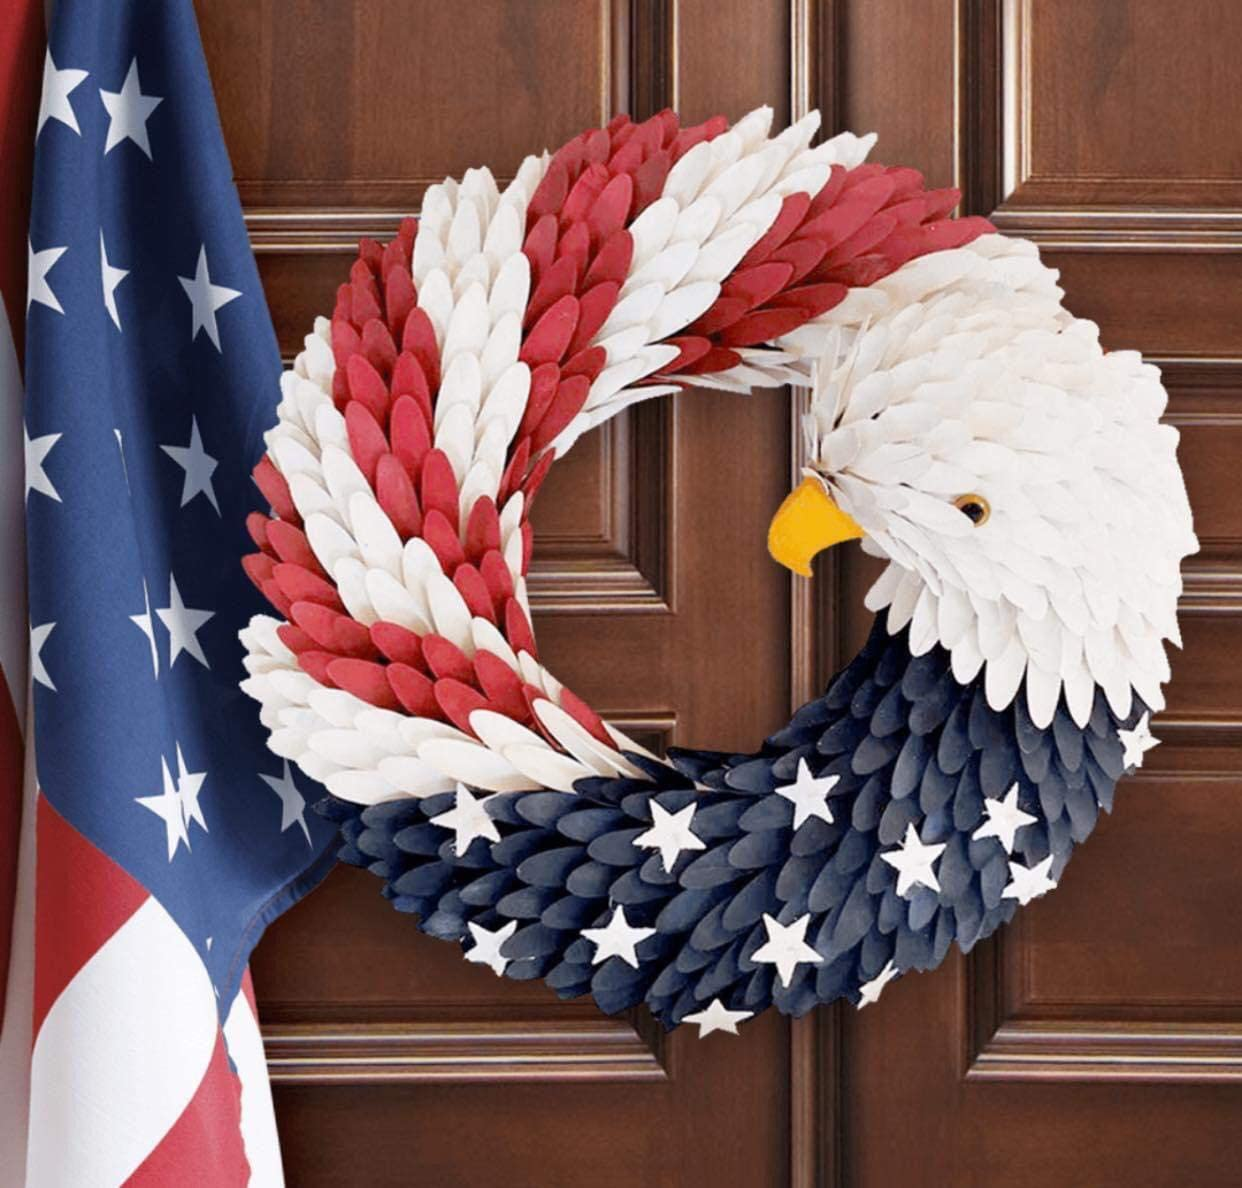 American Eagle Wreath for Door - Patriotic Flag Garland, Handcrafted Plastic Hanging Bald Wreaths Decor for Home Wall Door on Independence Day 4th of July, USA Memorial Labor Day Round 13 inch (Eagle)